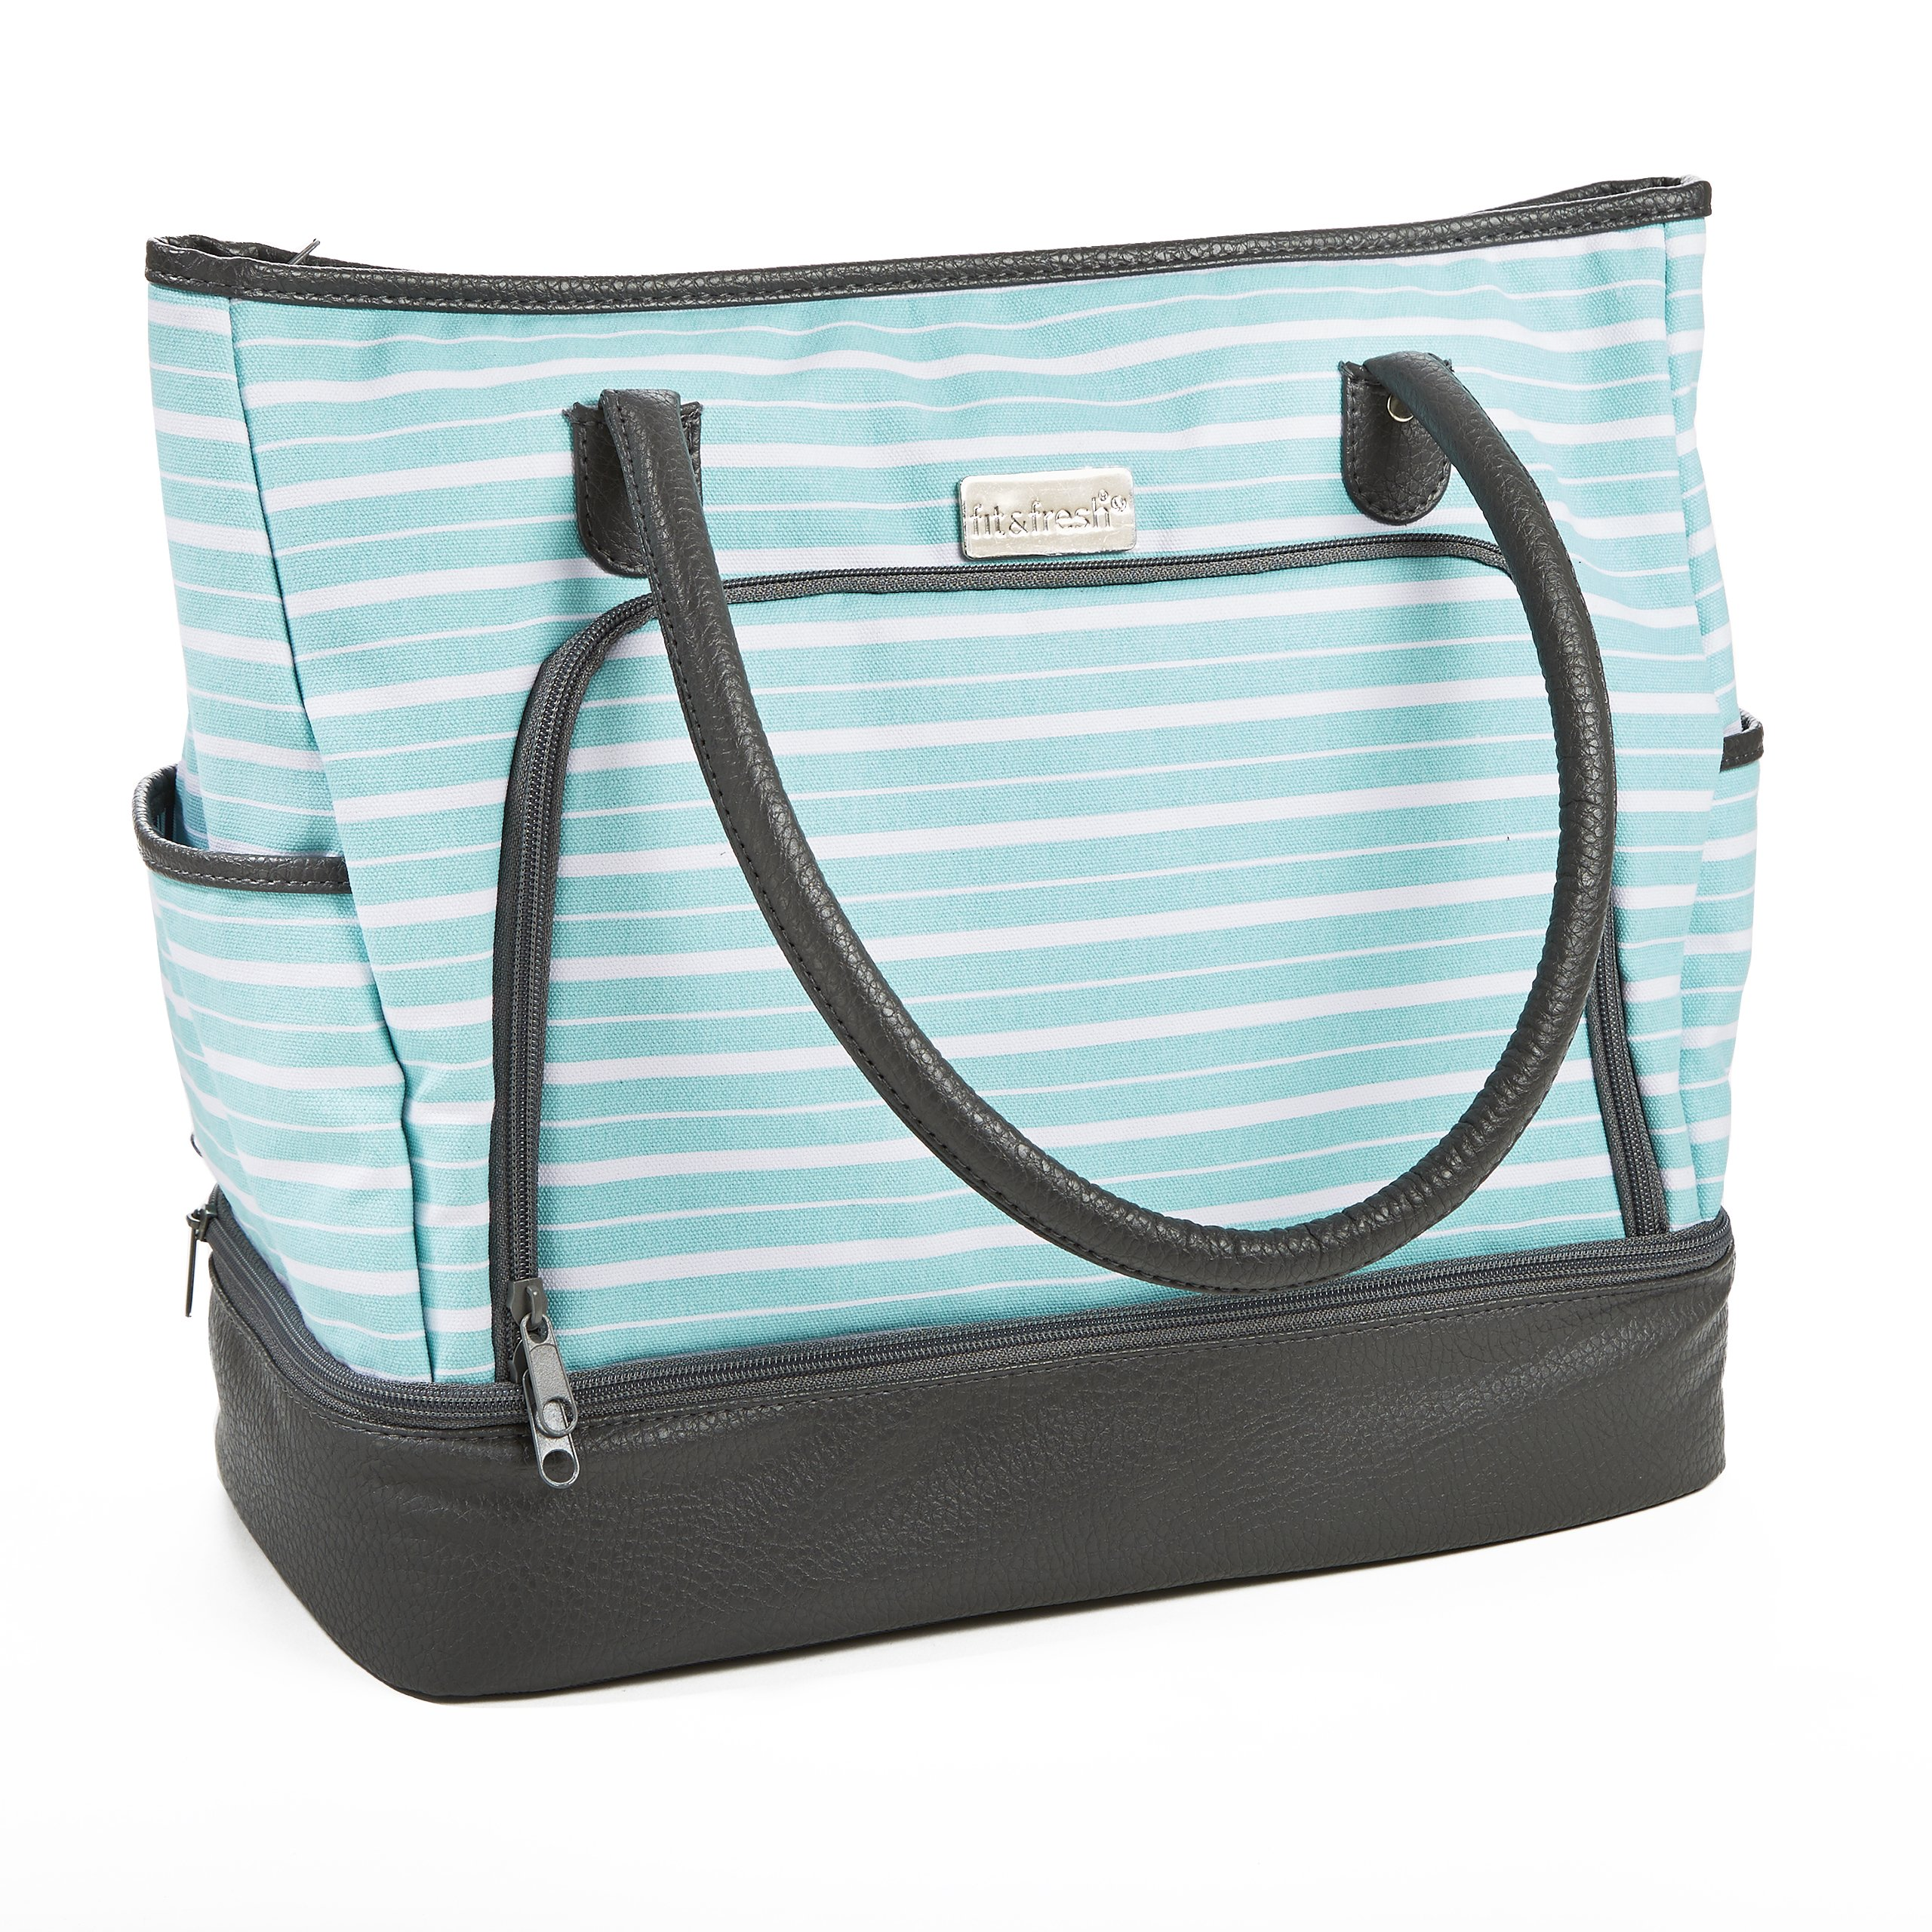 Fit & Fresh Voyager Travel/Commuter Tote Bag with Insulated Section for Lunch, Snacks and Drinks, Carry On, Zippered Shoulder Bag, Aqua Uneven Stripes by Fit & Fresh